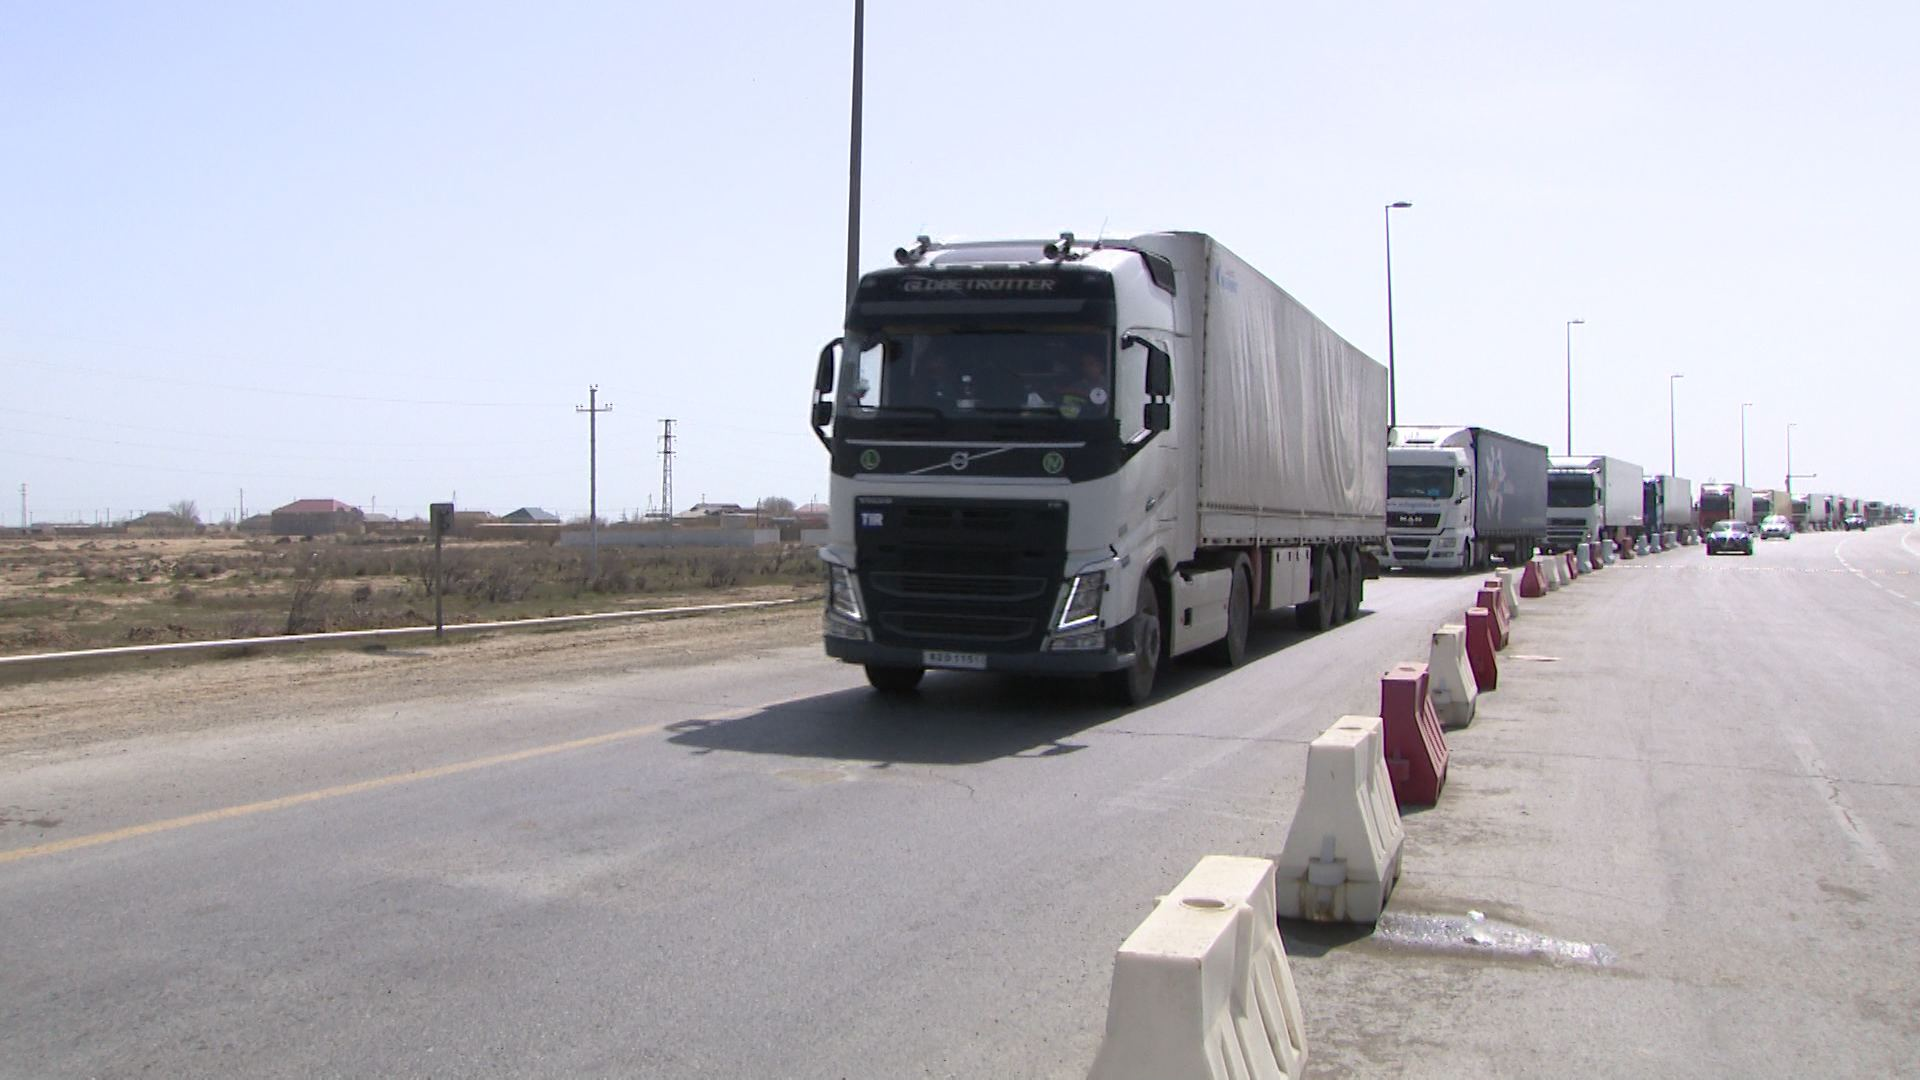 Movement of transit trucks ensured in Azerbaijan, says ministry (PHOTO/VIDEO)